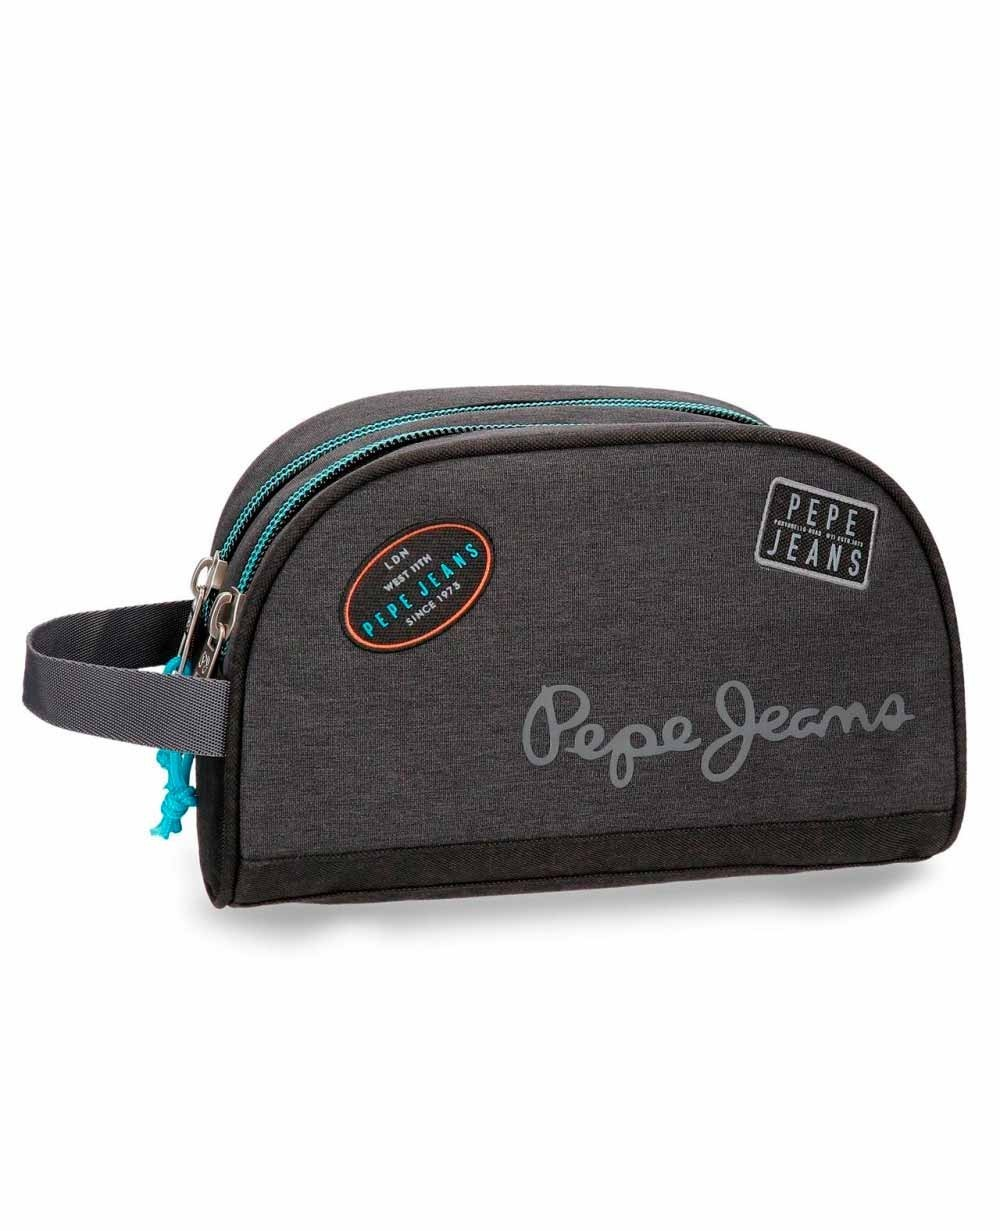 Pepe Jeans Teo Neceser Gris (Foto )